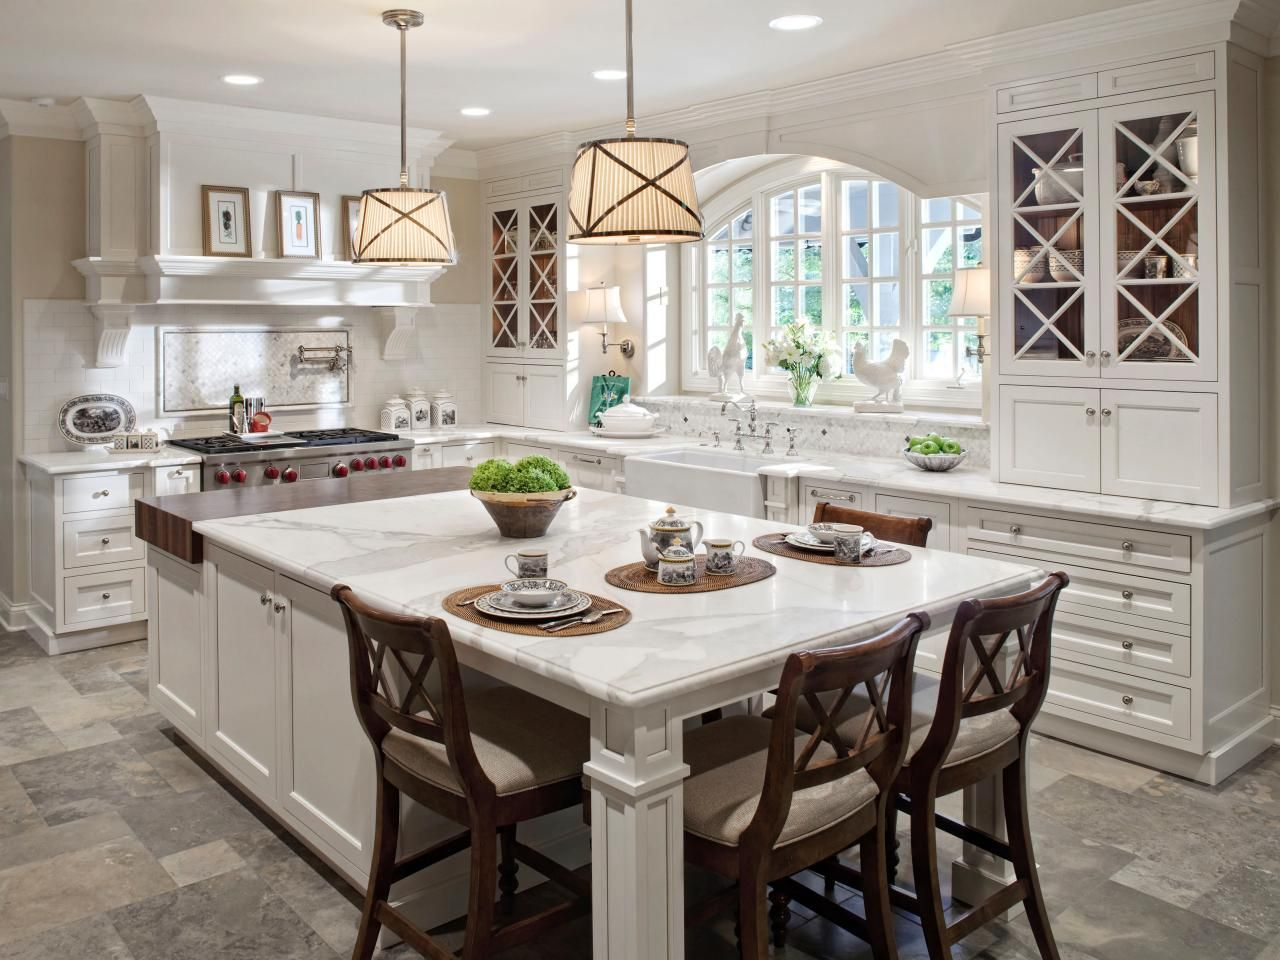 Fullsize Of Best Kitchen Island Design